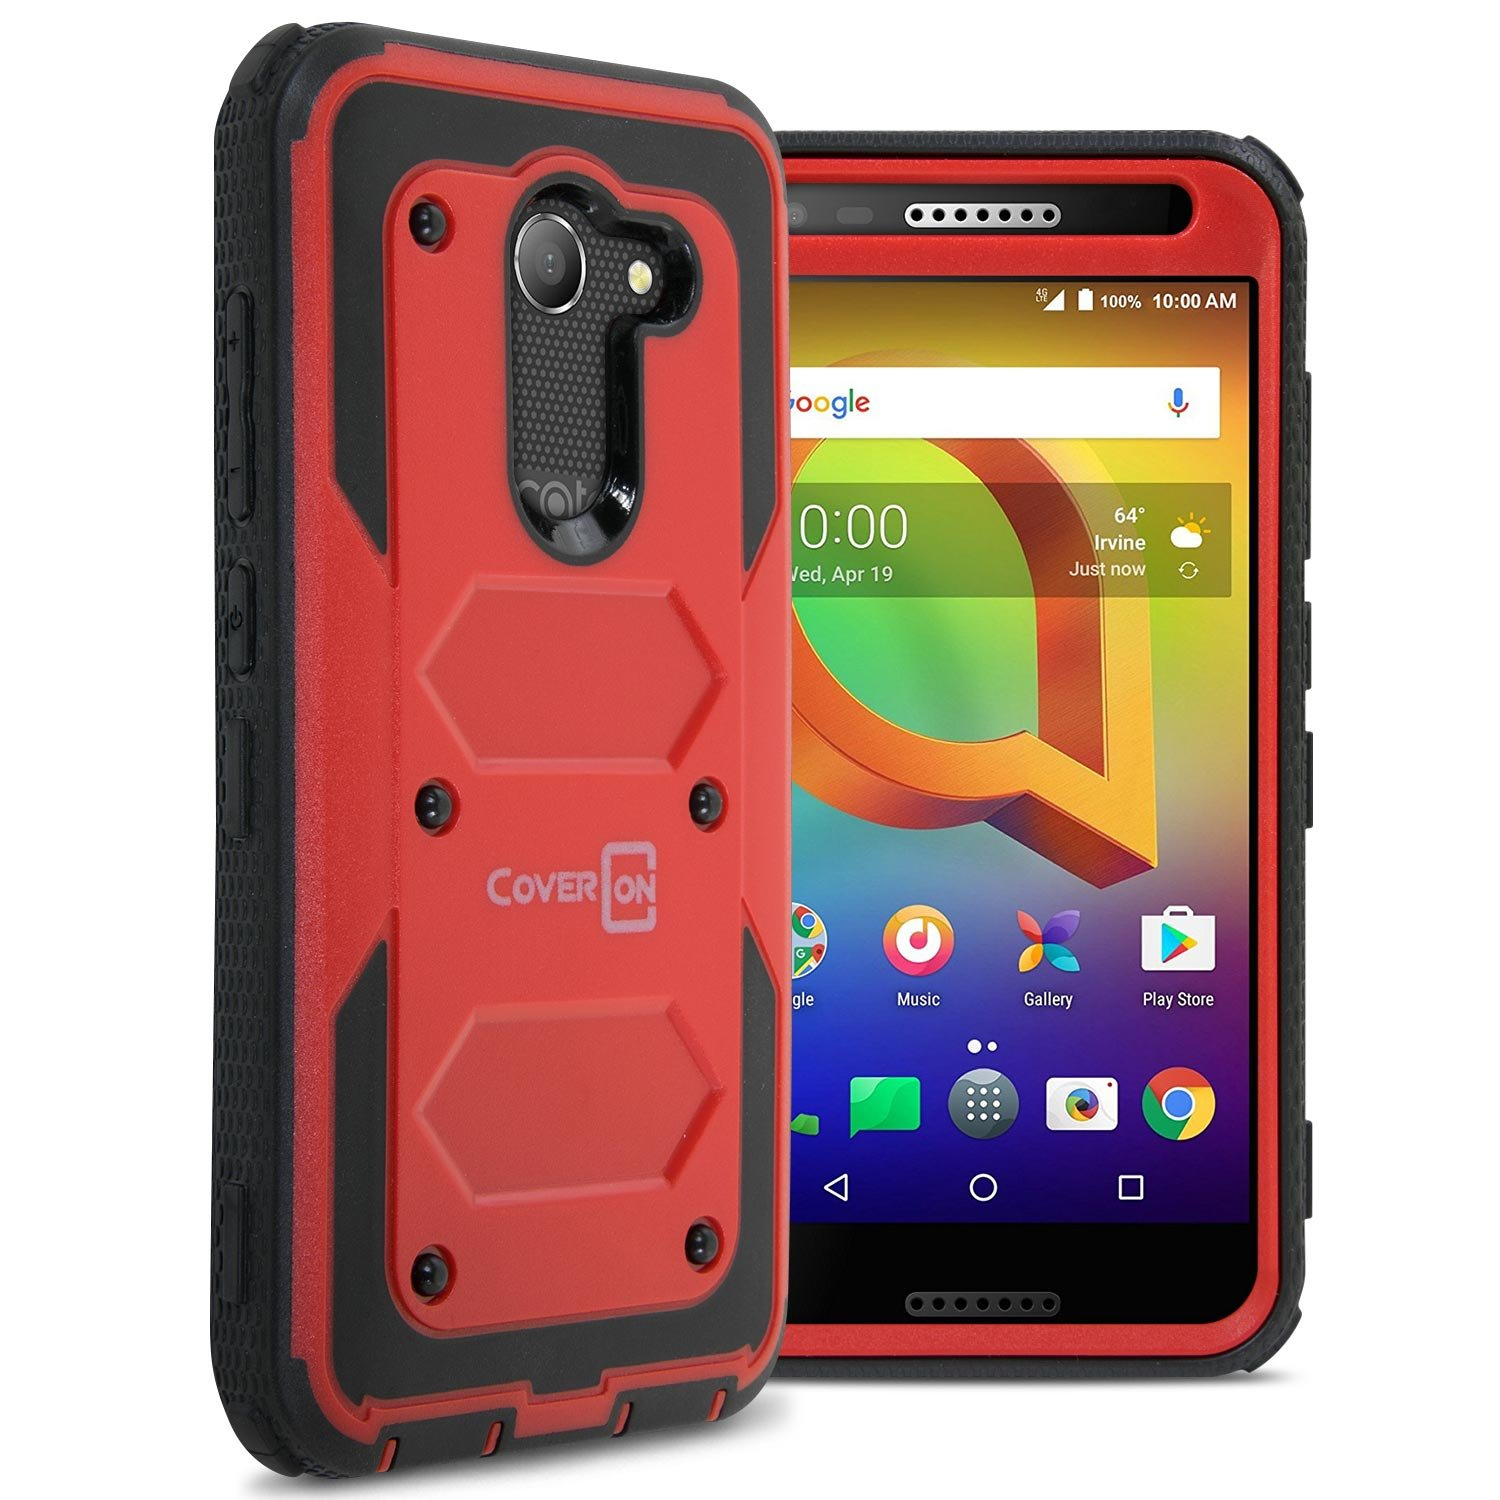 CoverON Heavy Duty Full Body Tank Series for Alcatel A30 / Zip/Kora Case, Red